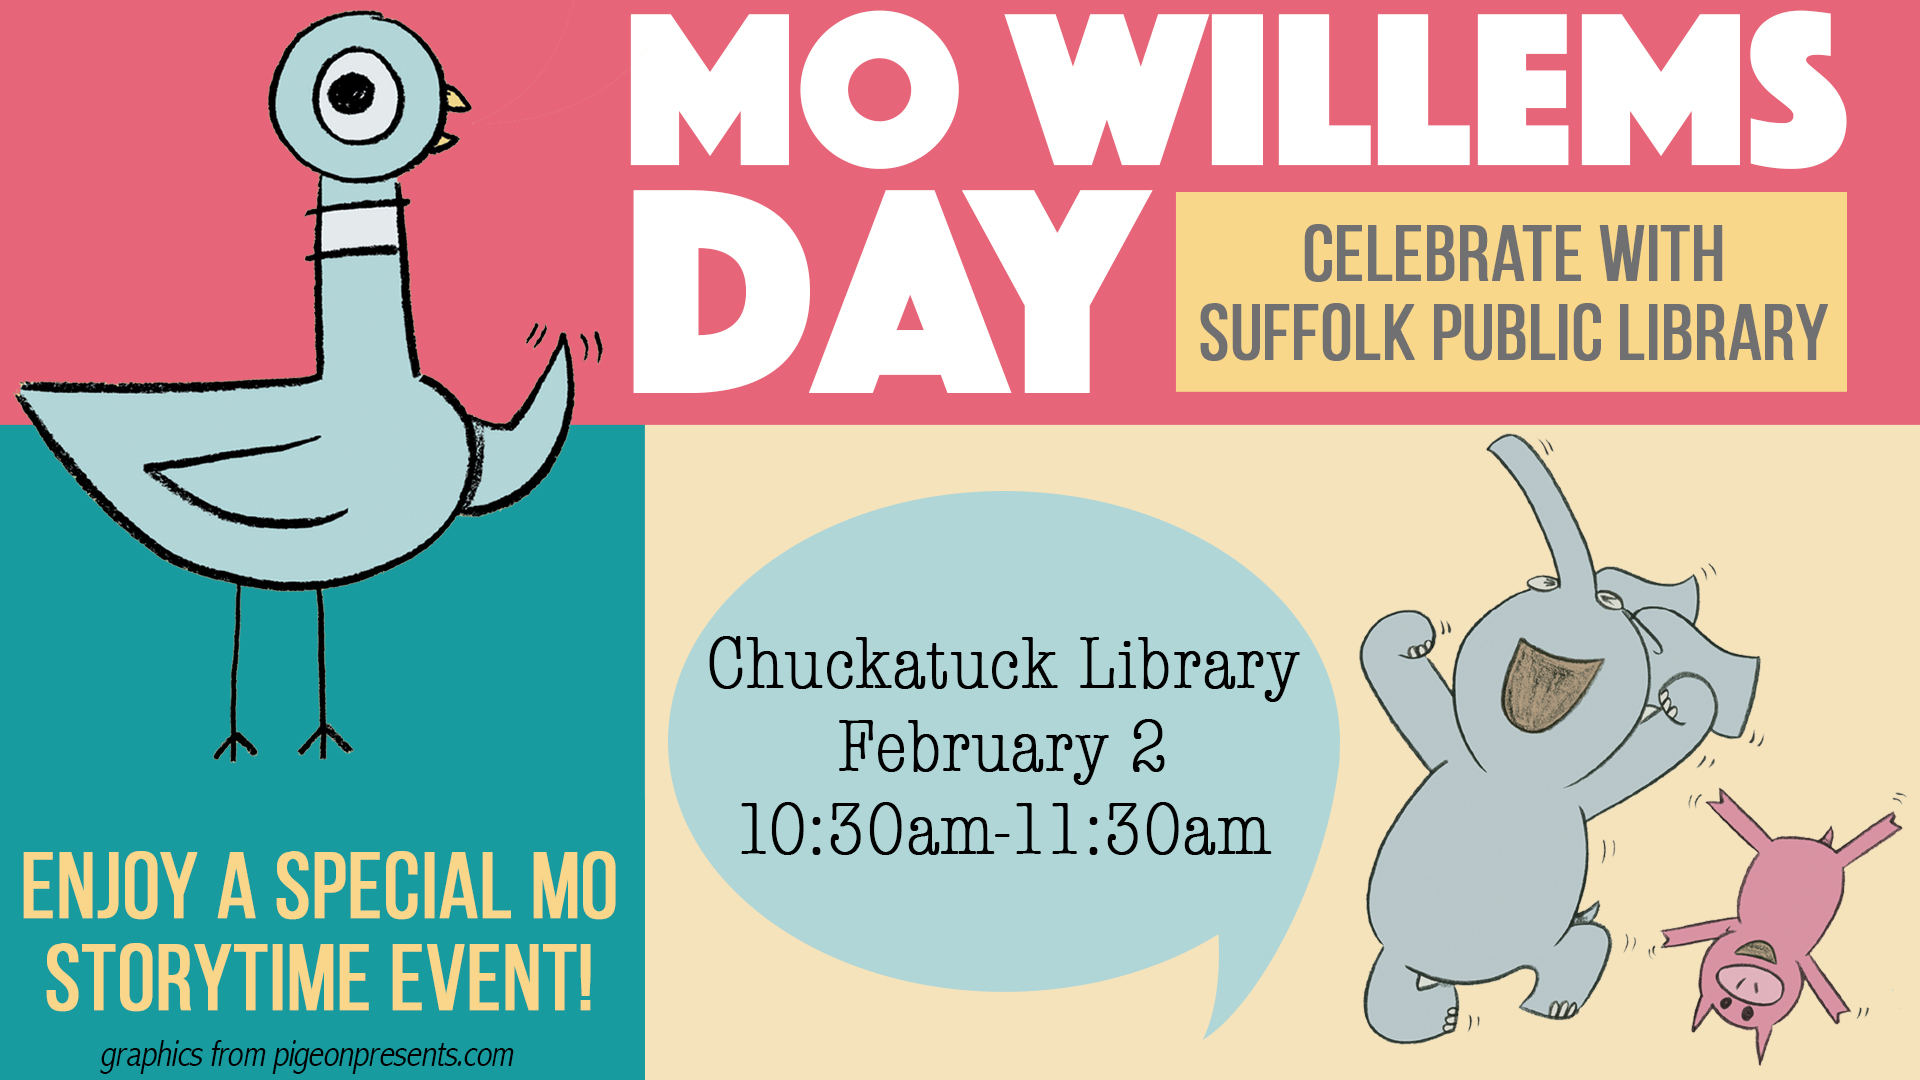 Mo Willems' Day